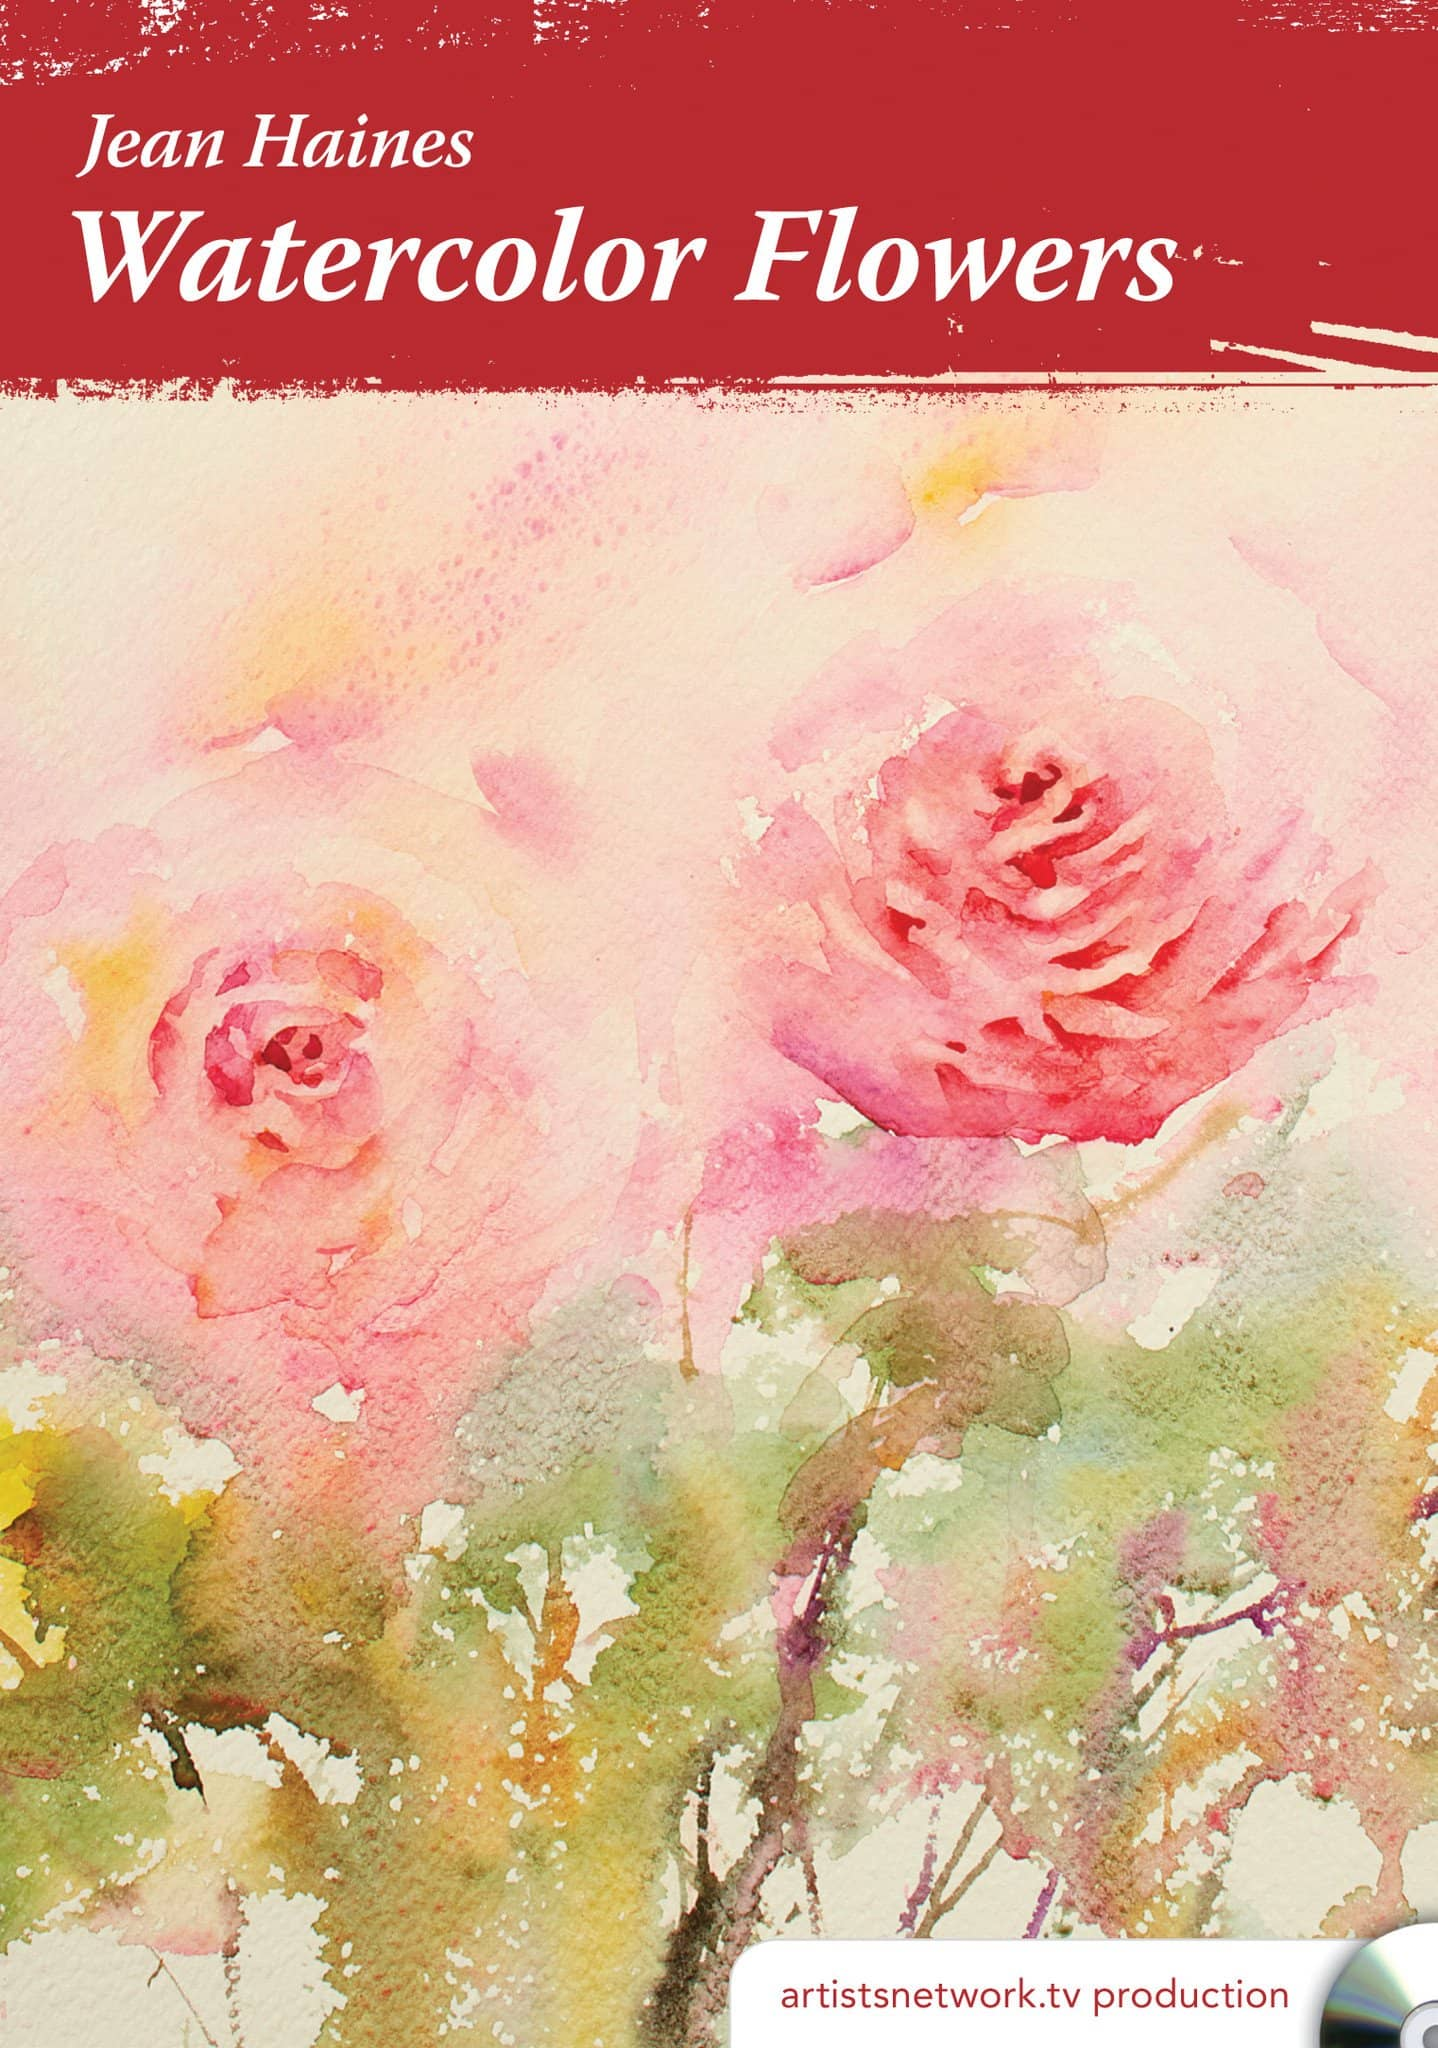 Jean Haines Watercolor Flowers With Jean Haines Creative